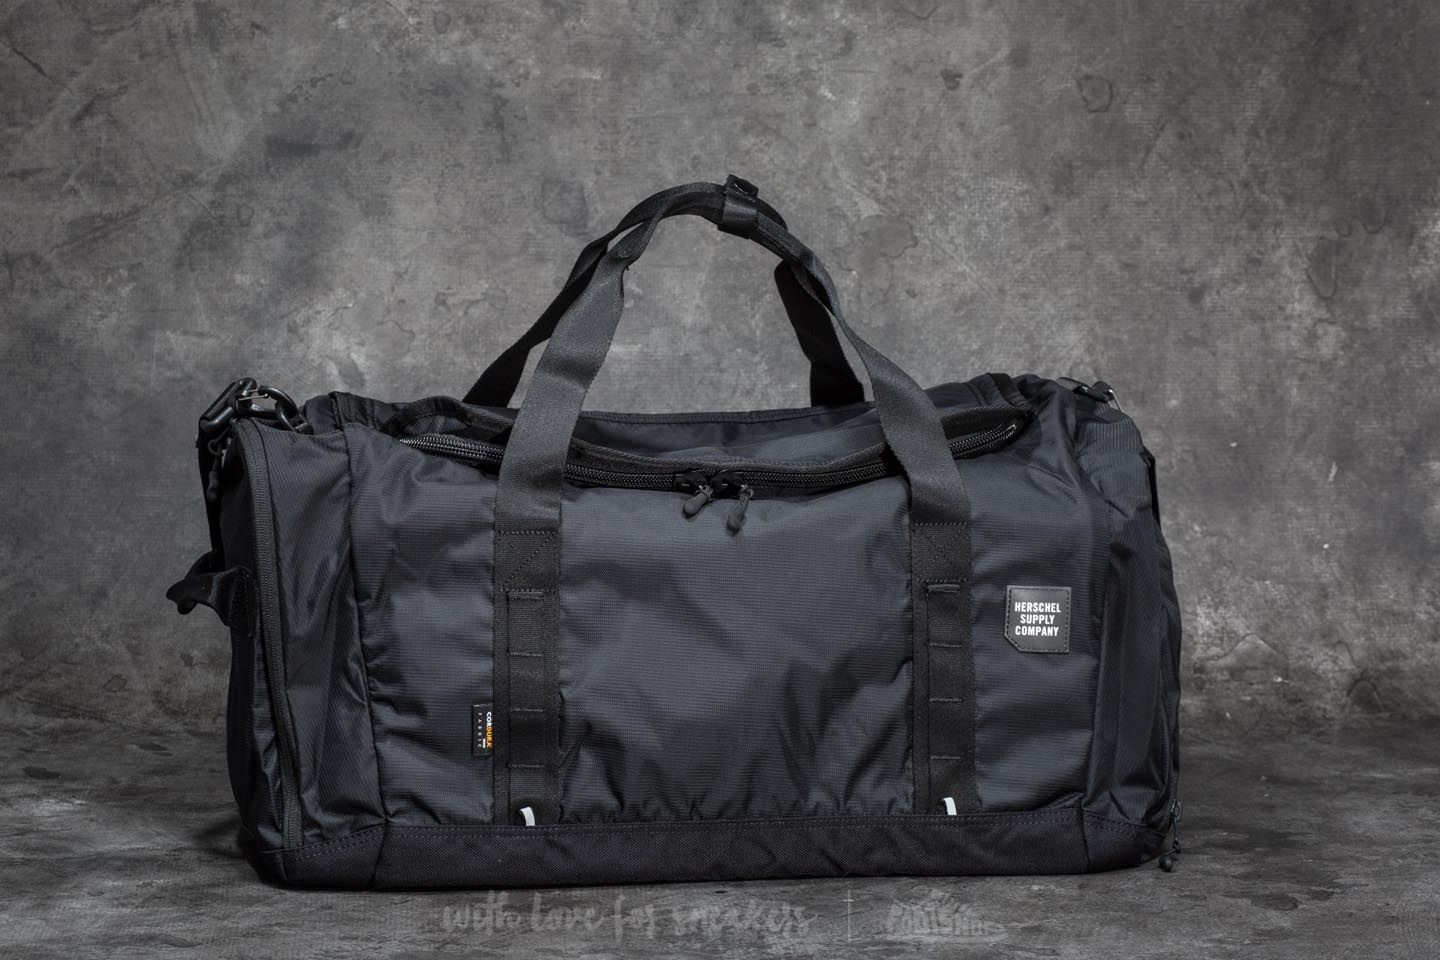 9ad205970d Herschel Supply Co. Gorge Large Duffle Bag Black